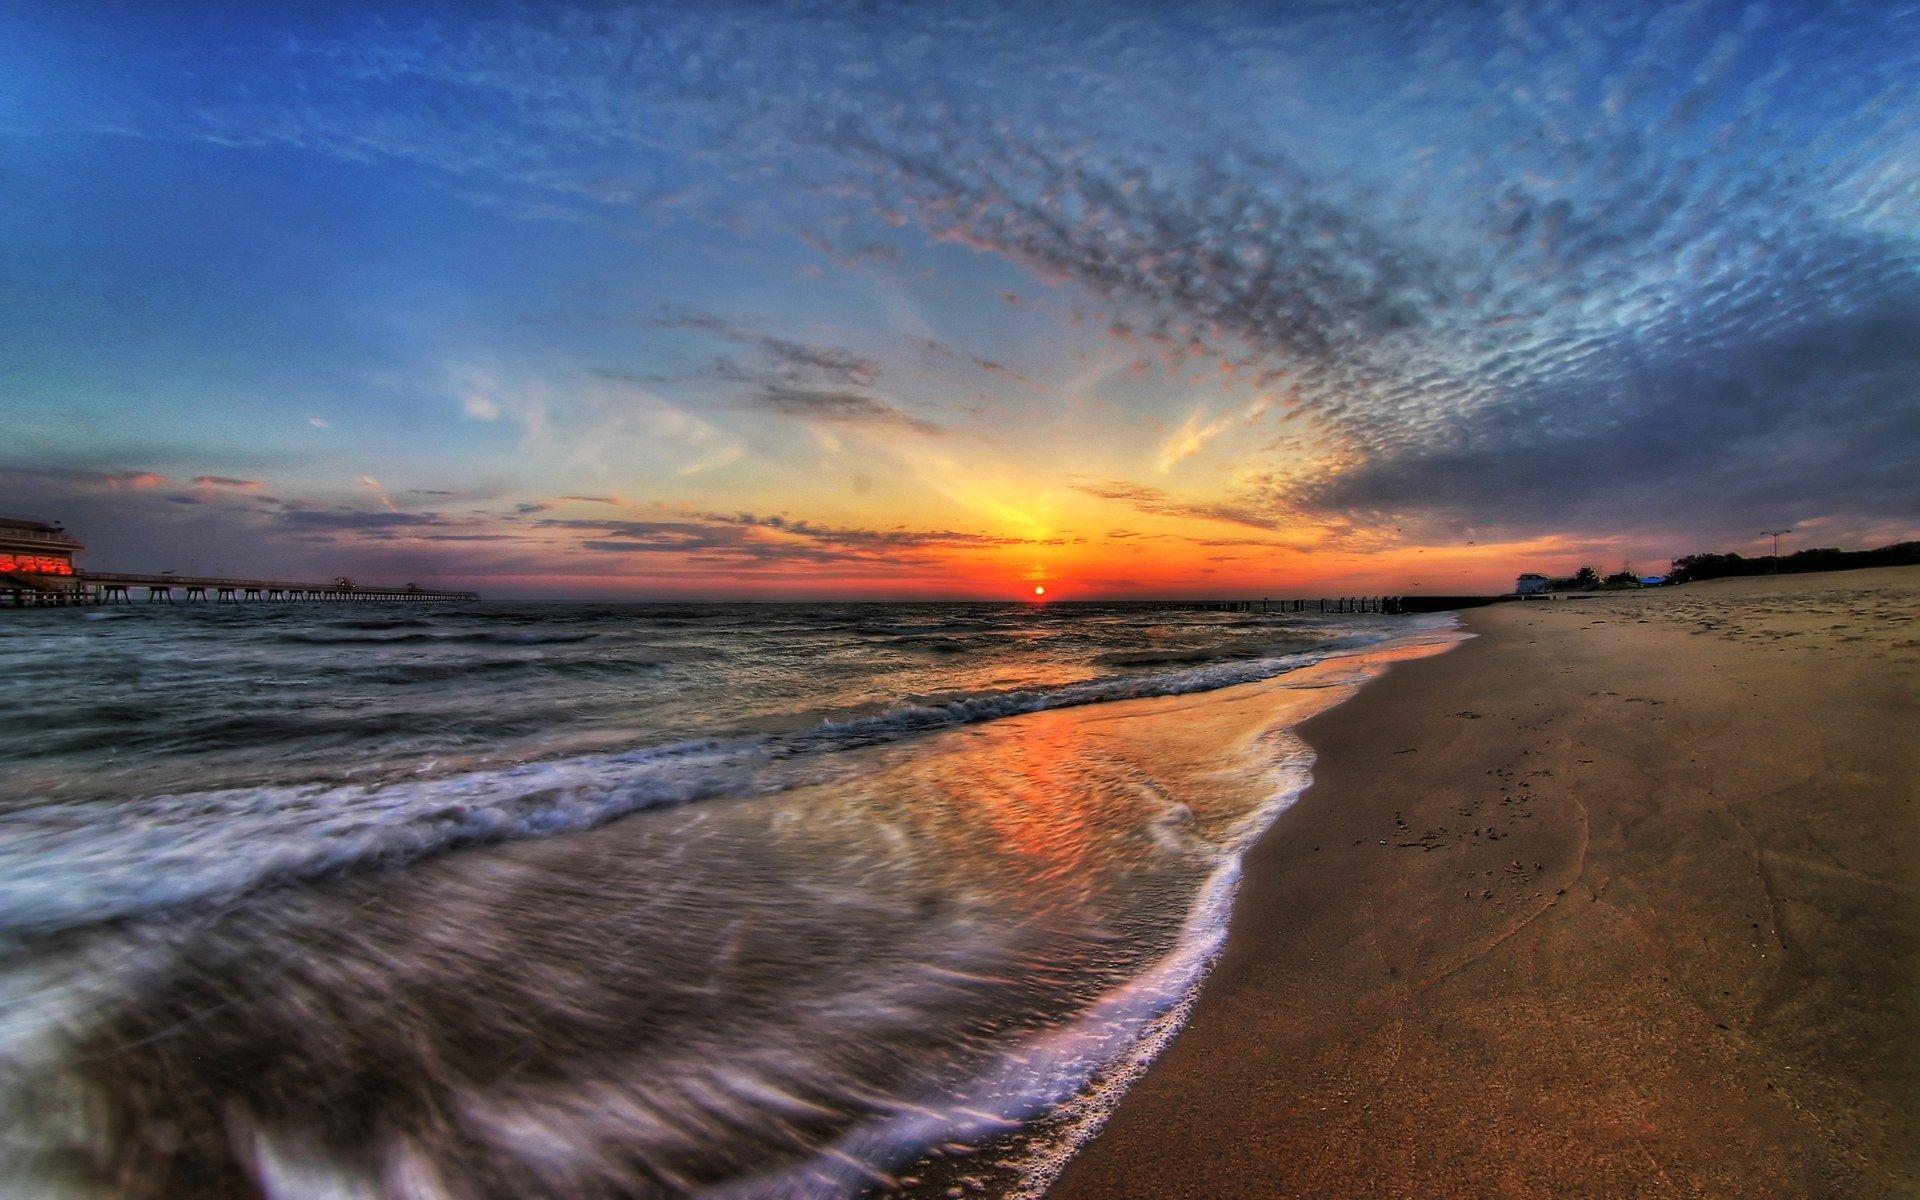 Sunrise wallpaper wallpapers for free download about